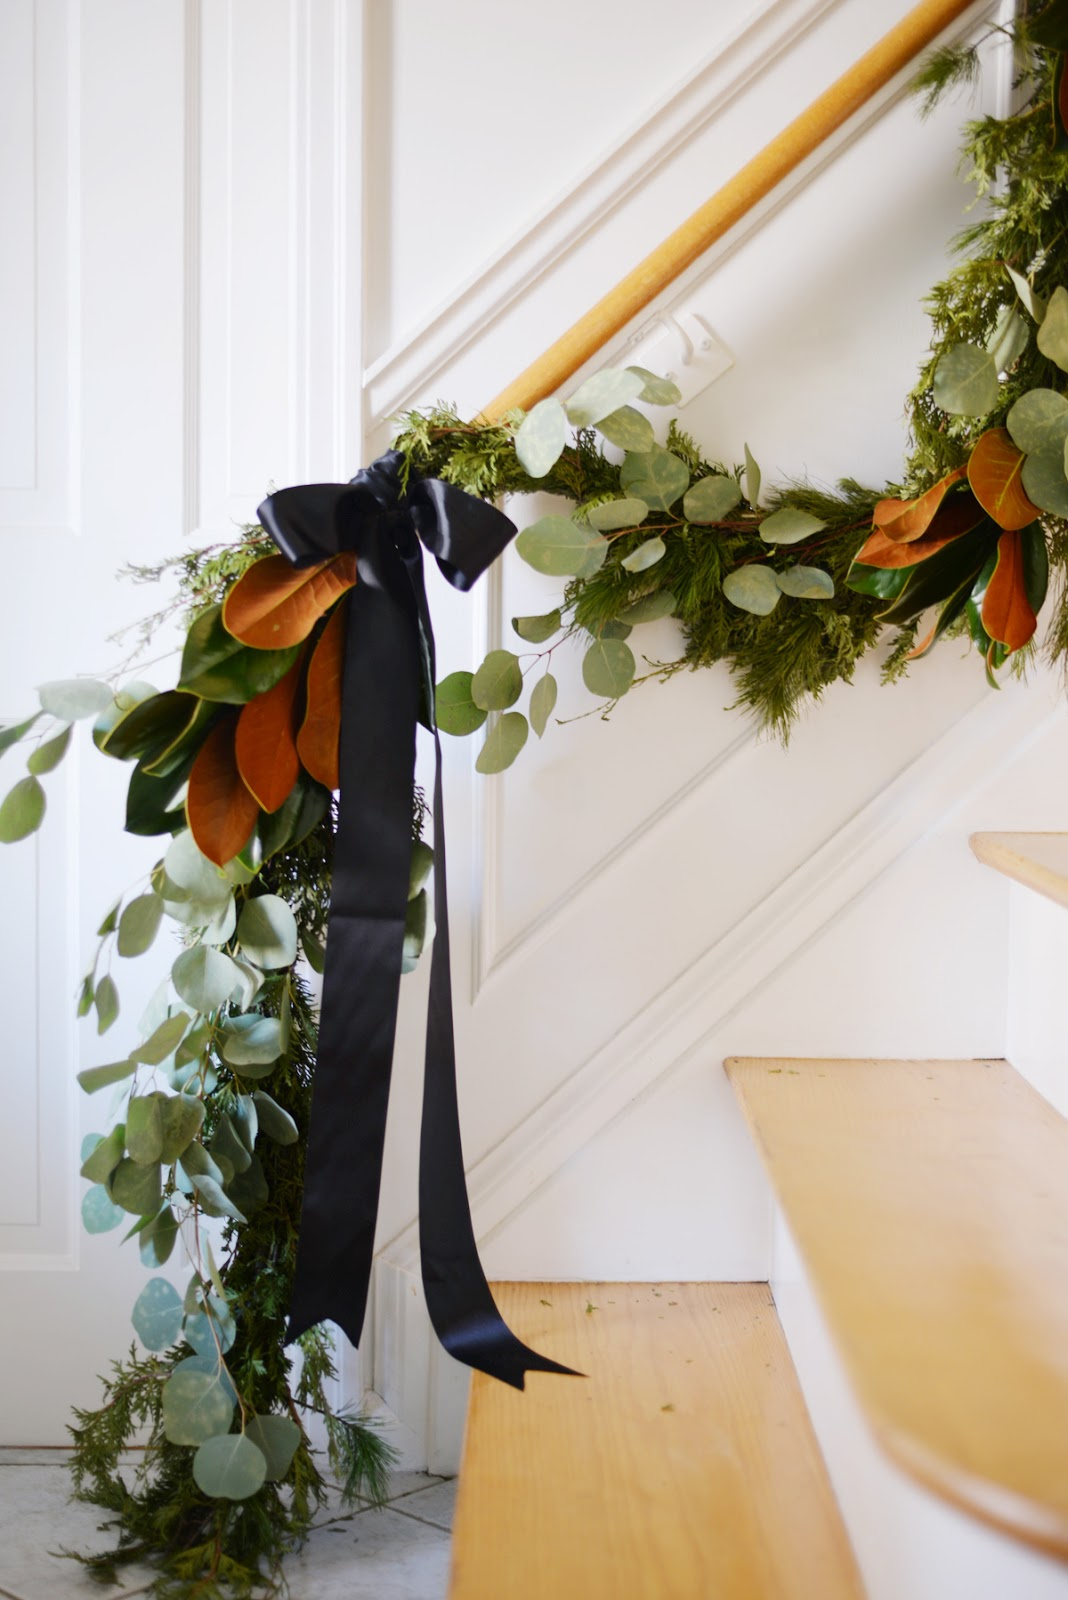 how to hang garland, wreaths, and holiday decorations using handy gadgets